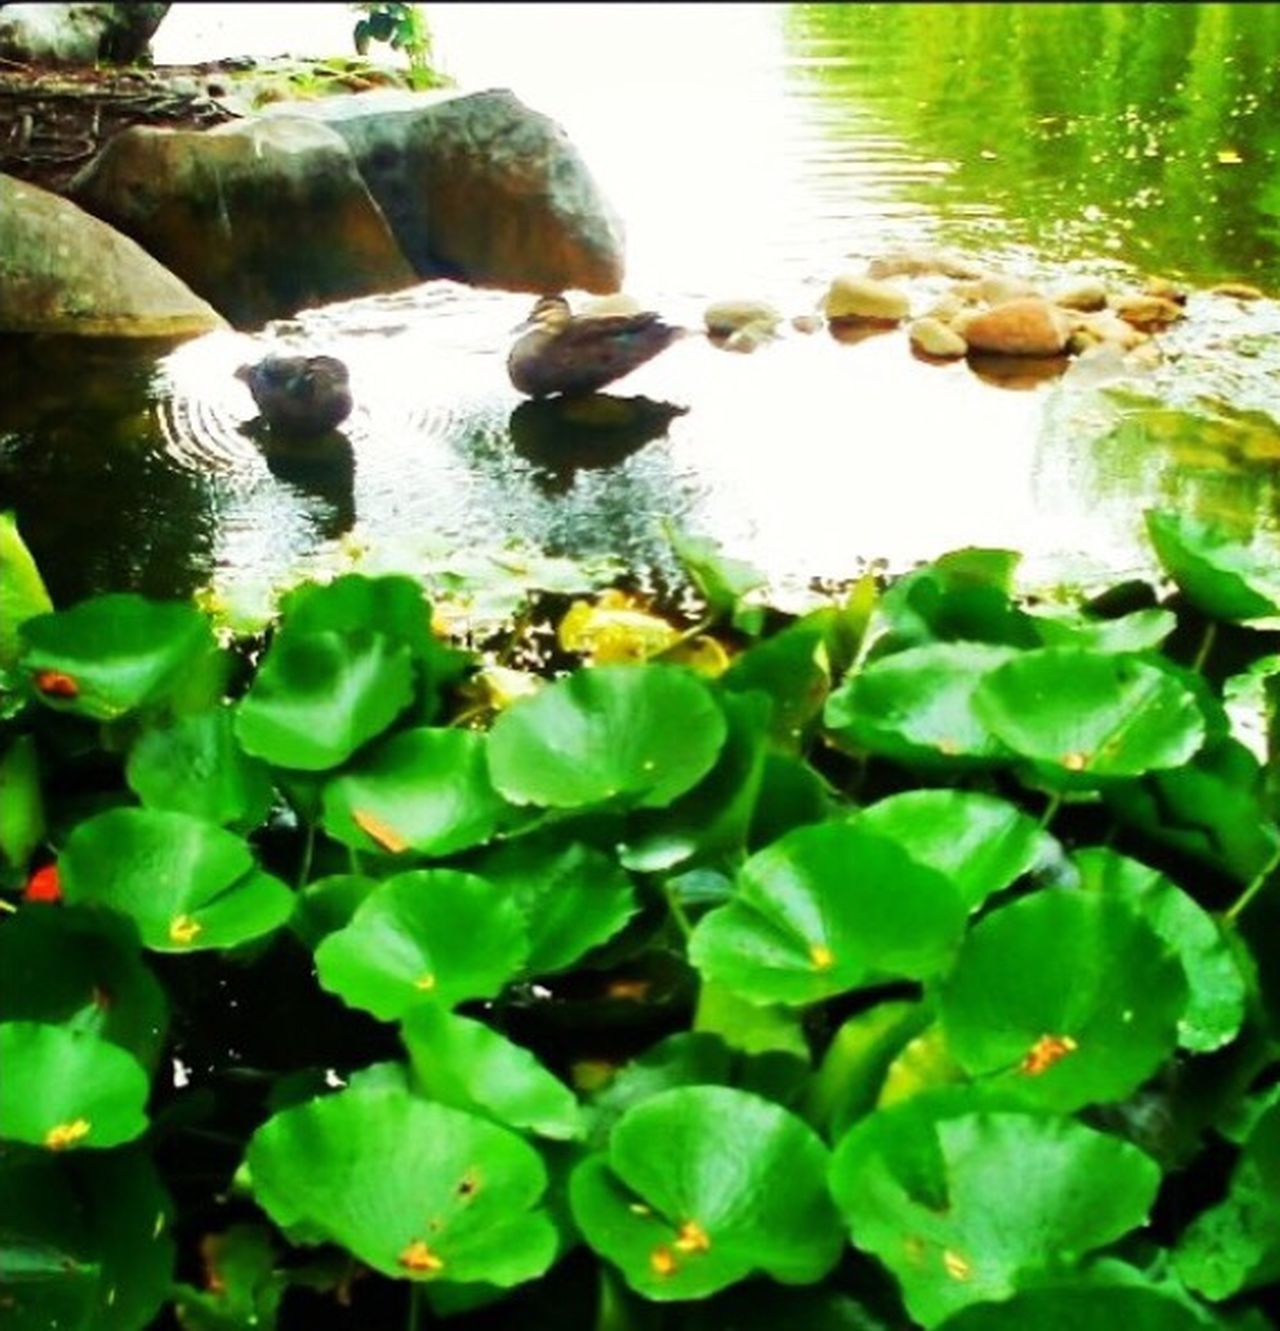 China town gardens. China Garden Ducks Lillypads Lillypond Pond Green Color Water Park Garden Photography